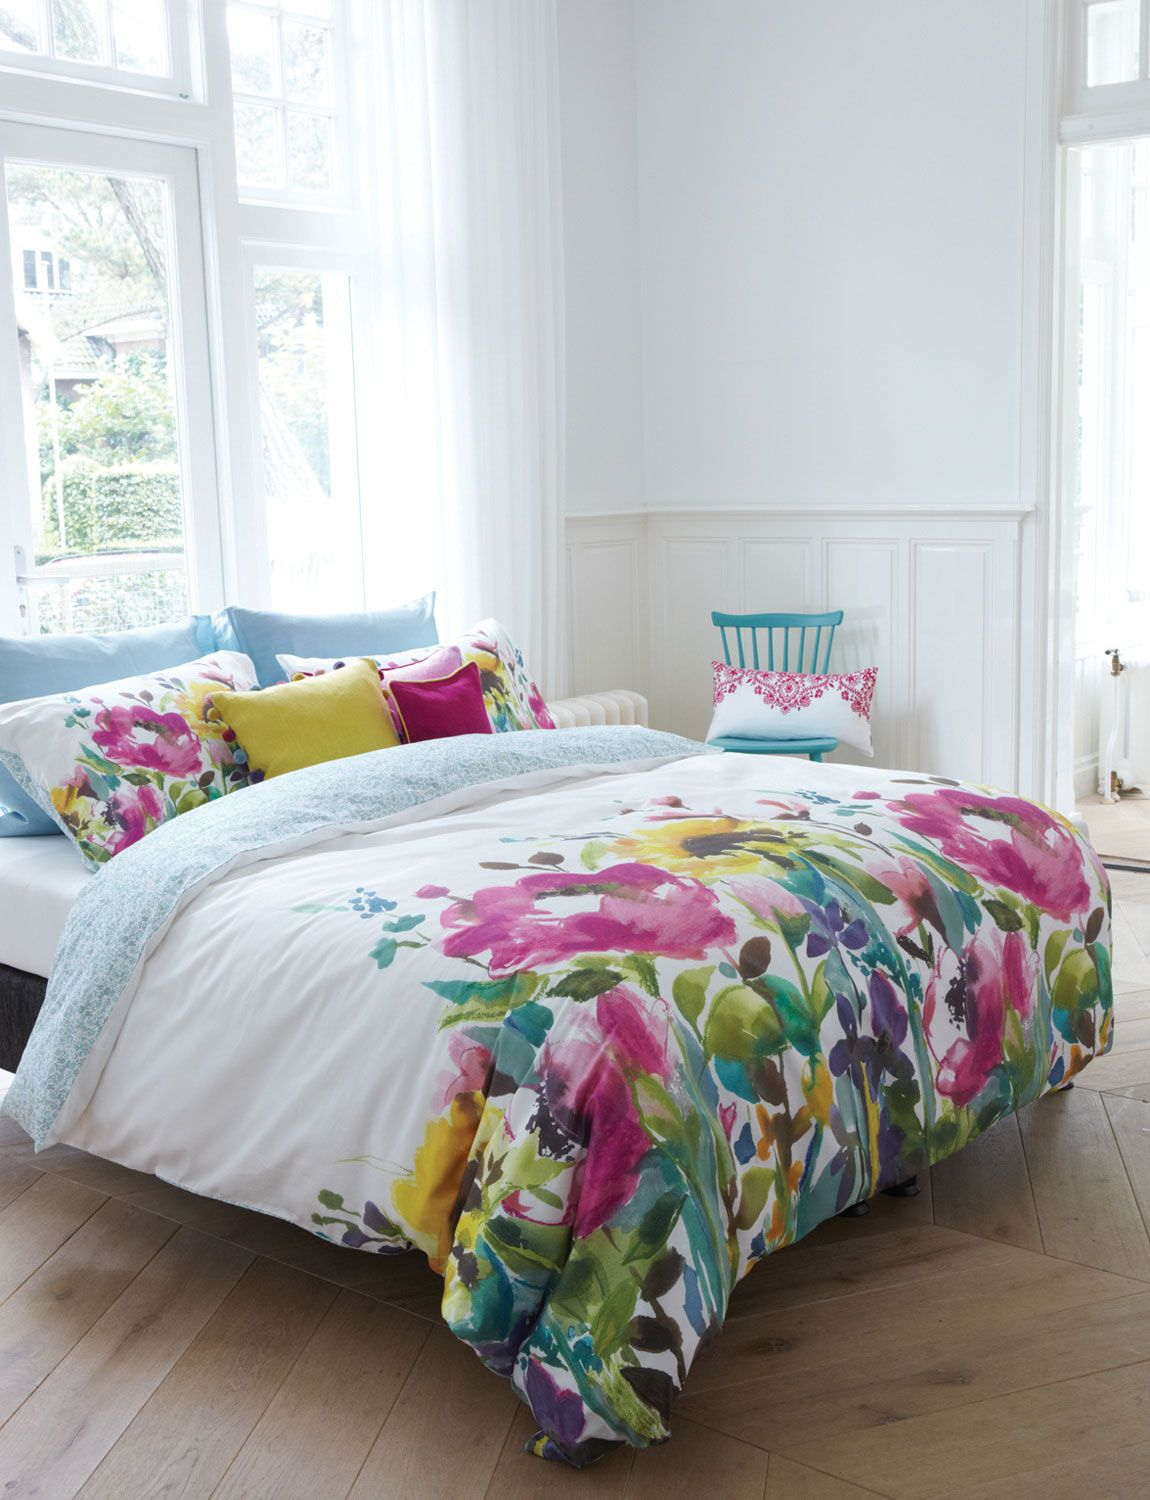 Bedding collection bluebellgray cojines pinterest - Cojines de seda ...